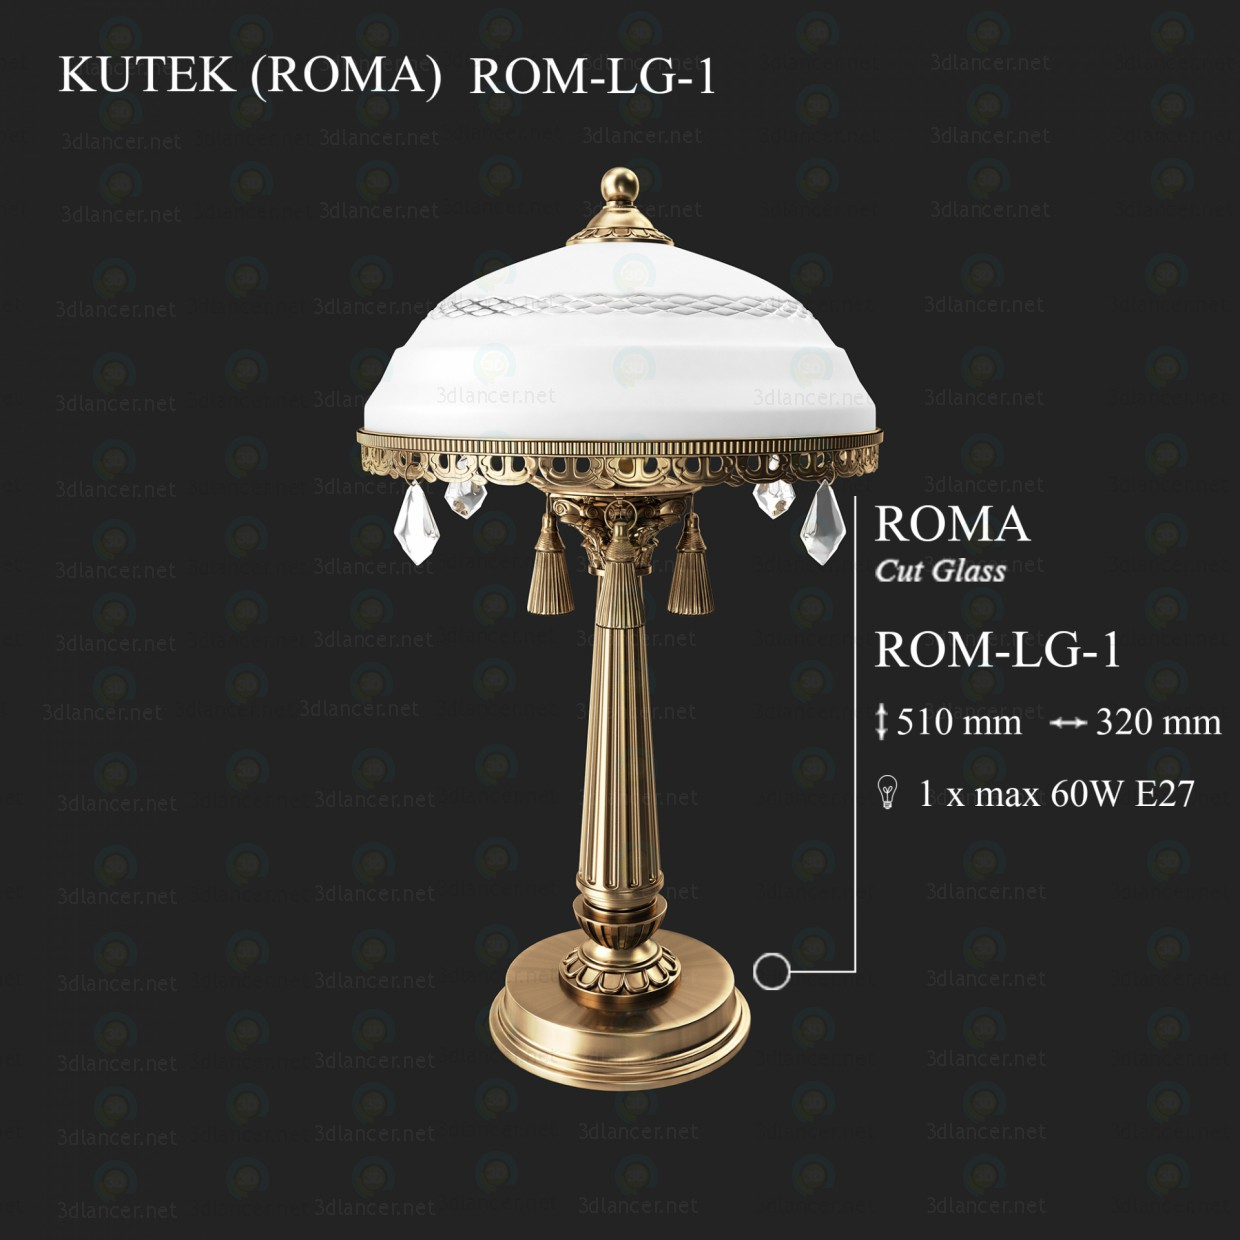 3d modeling Table lamp KUTEK ROMA ROM-LG-1 model free download